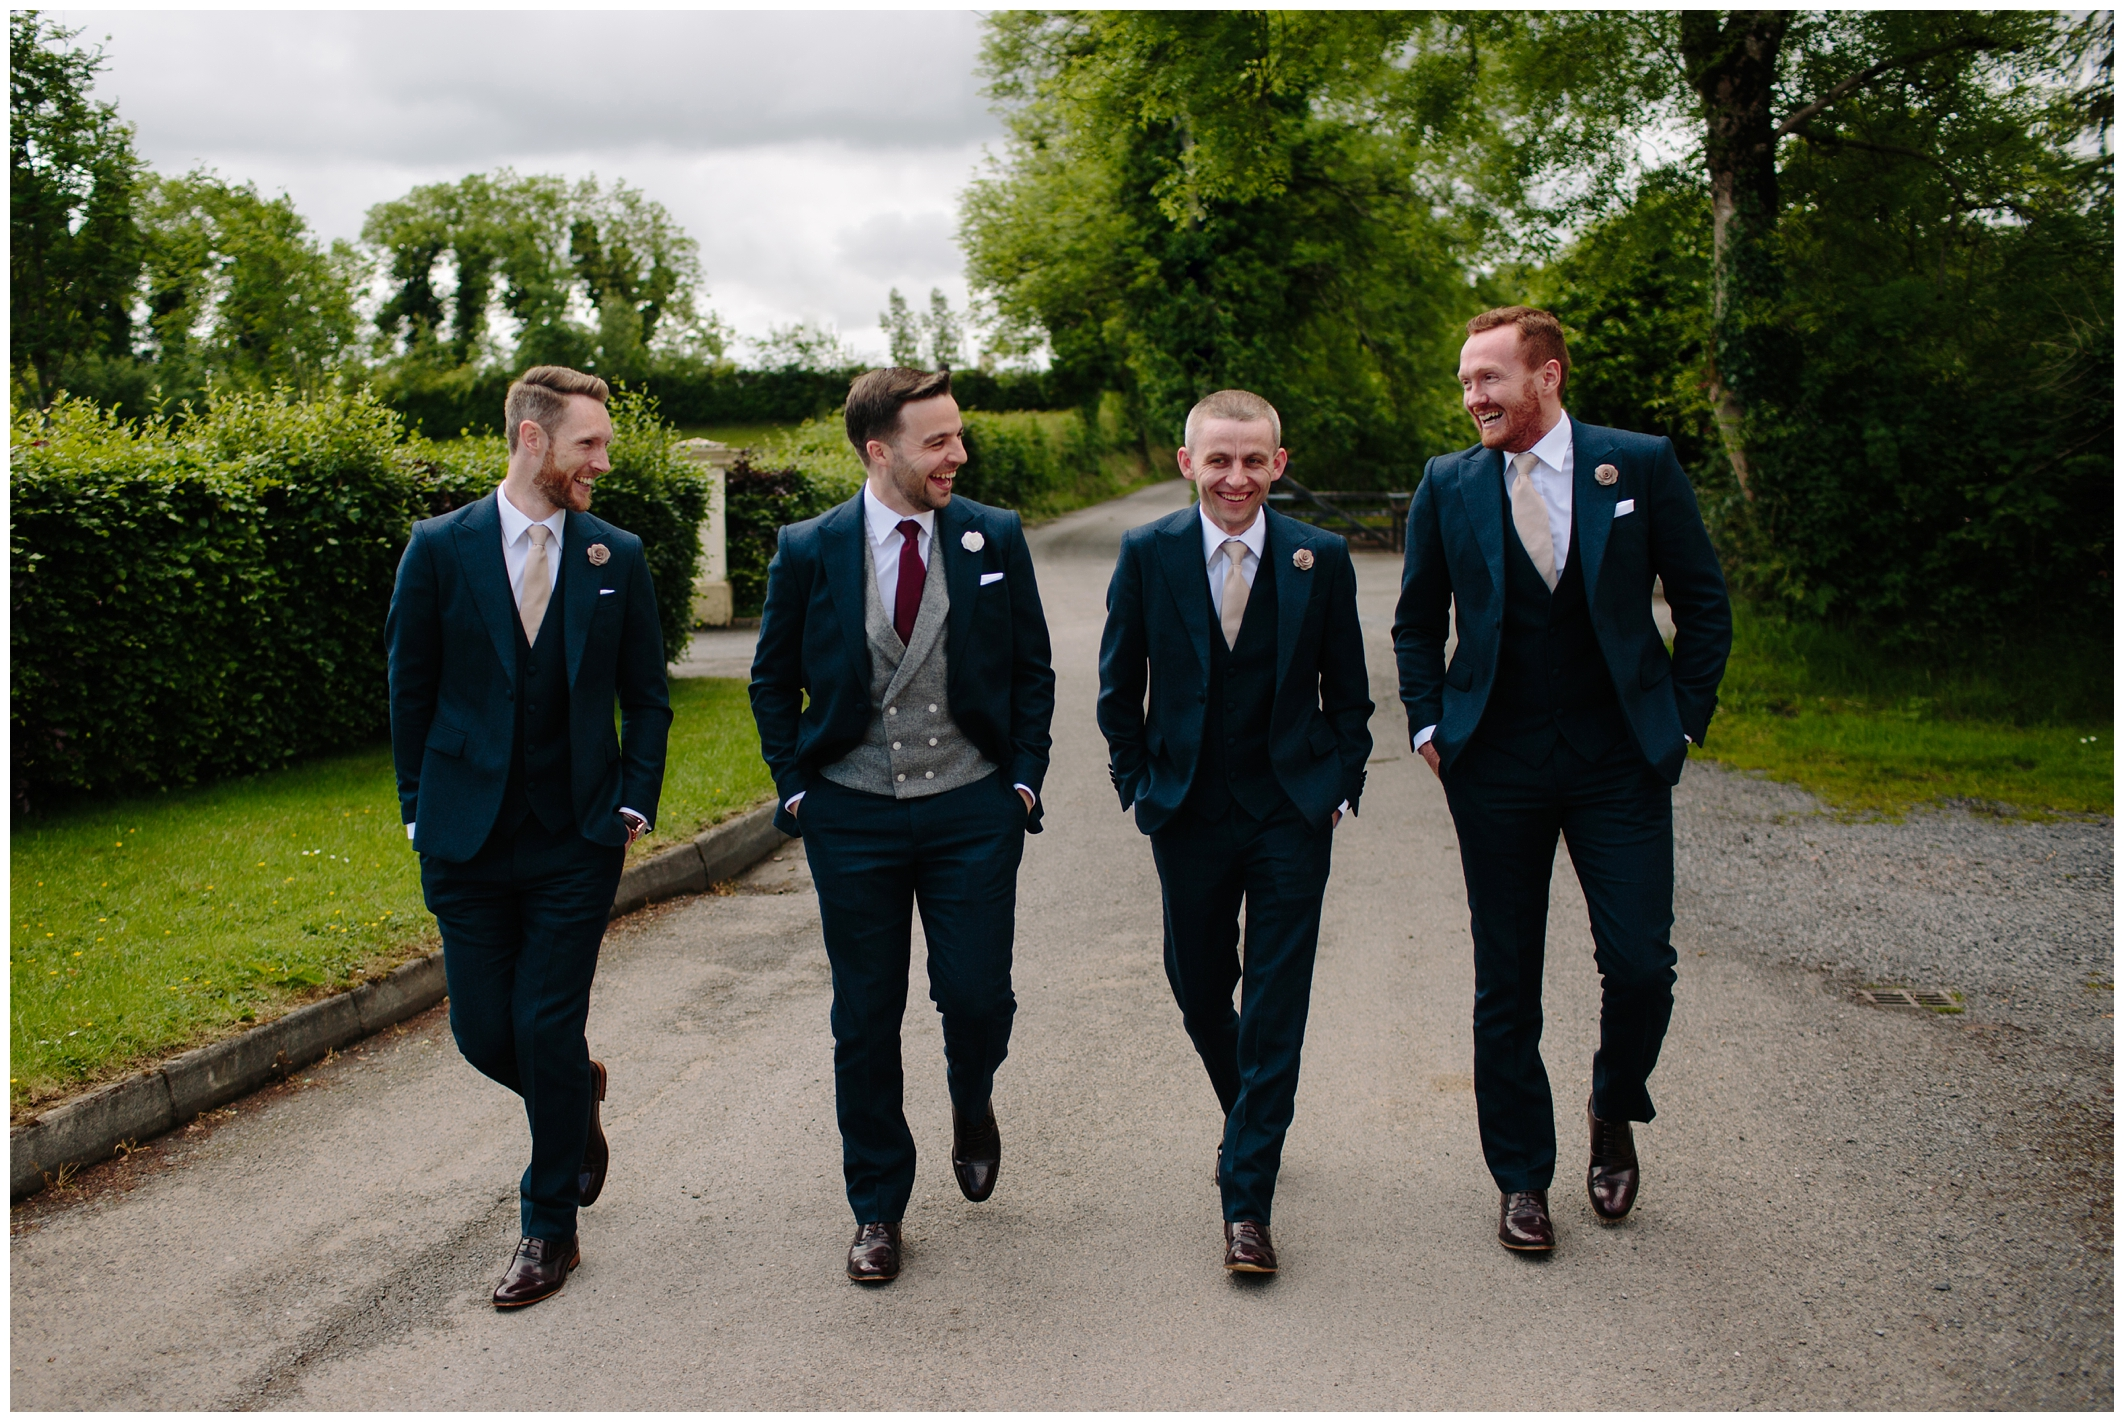 sinead_emmet_farnham_estate_wedding_jude_browne_photography_0046.jpg